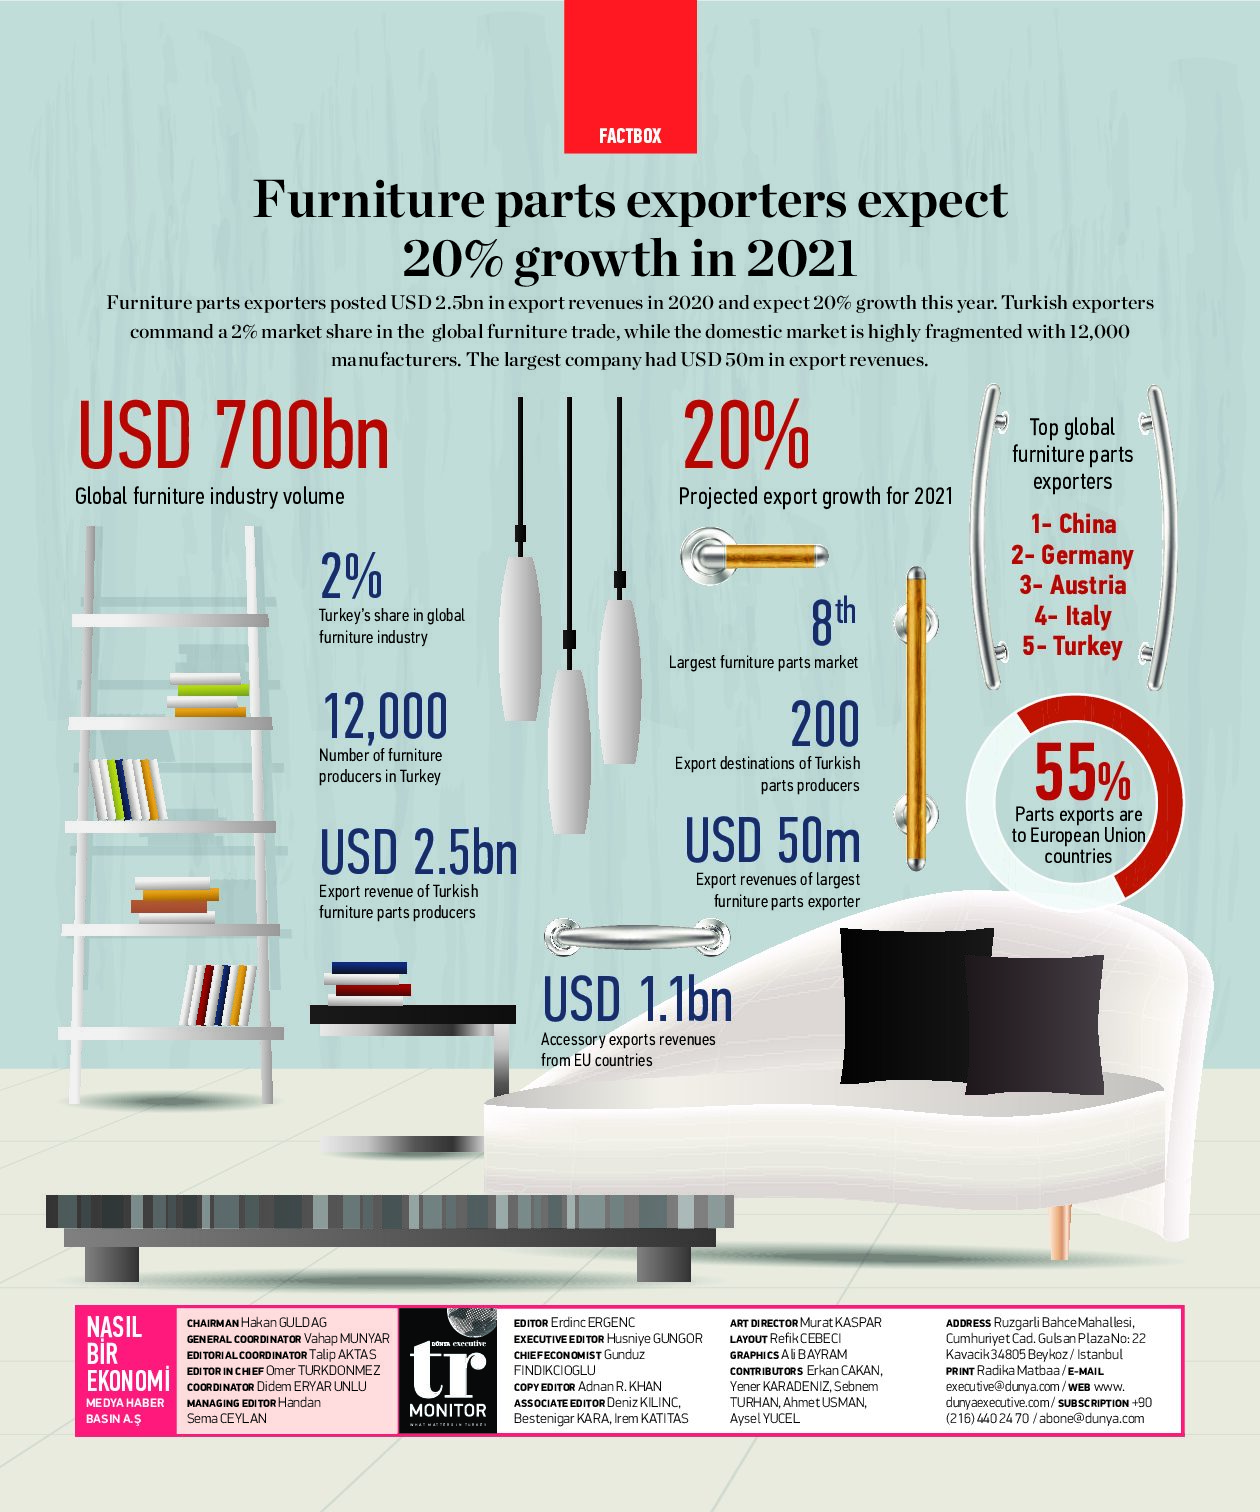 Furniture part exporters expect 20% growth in 2021